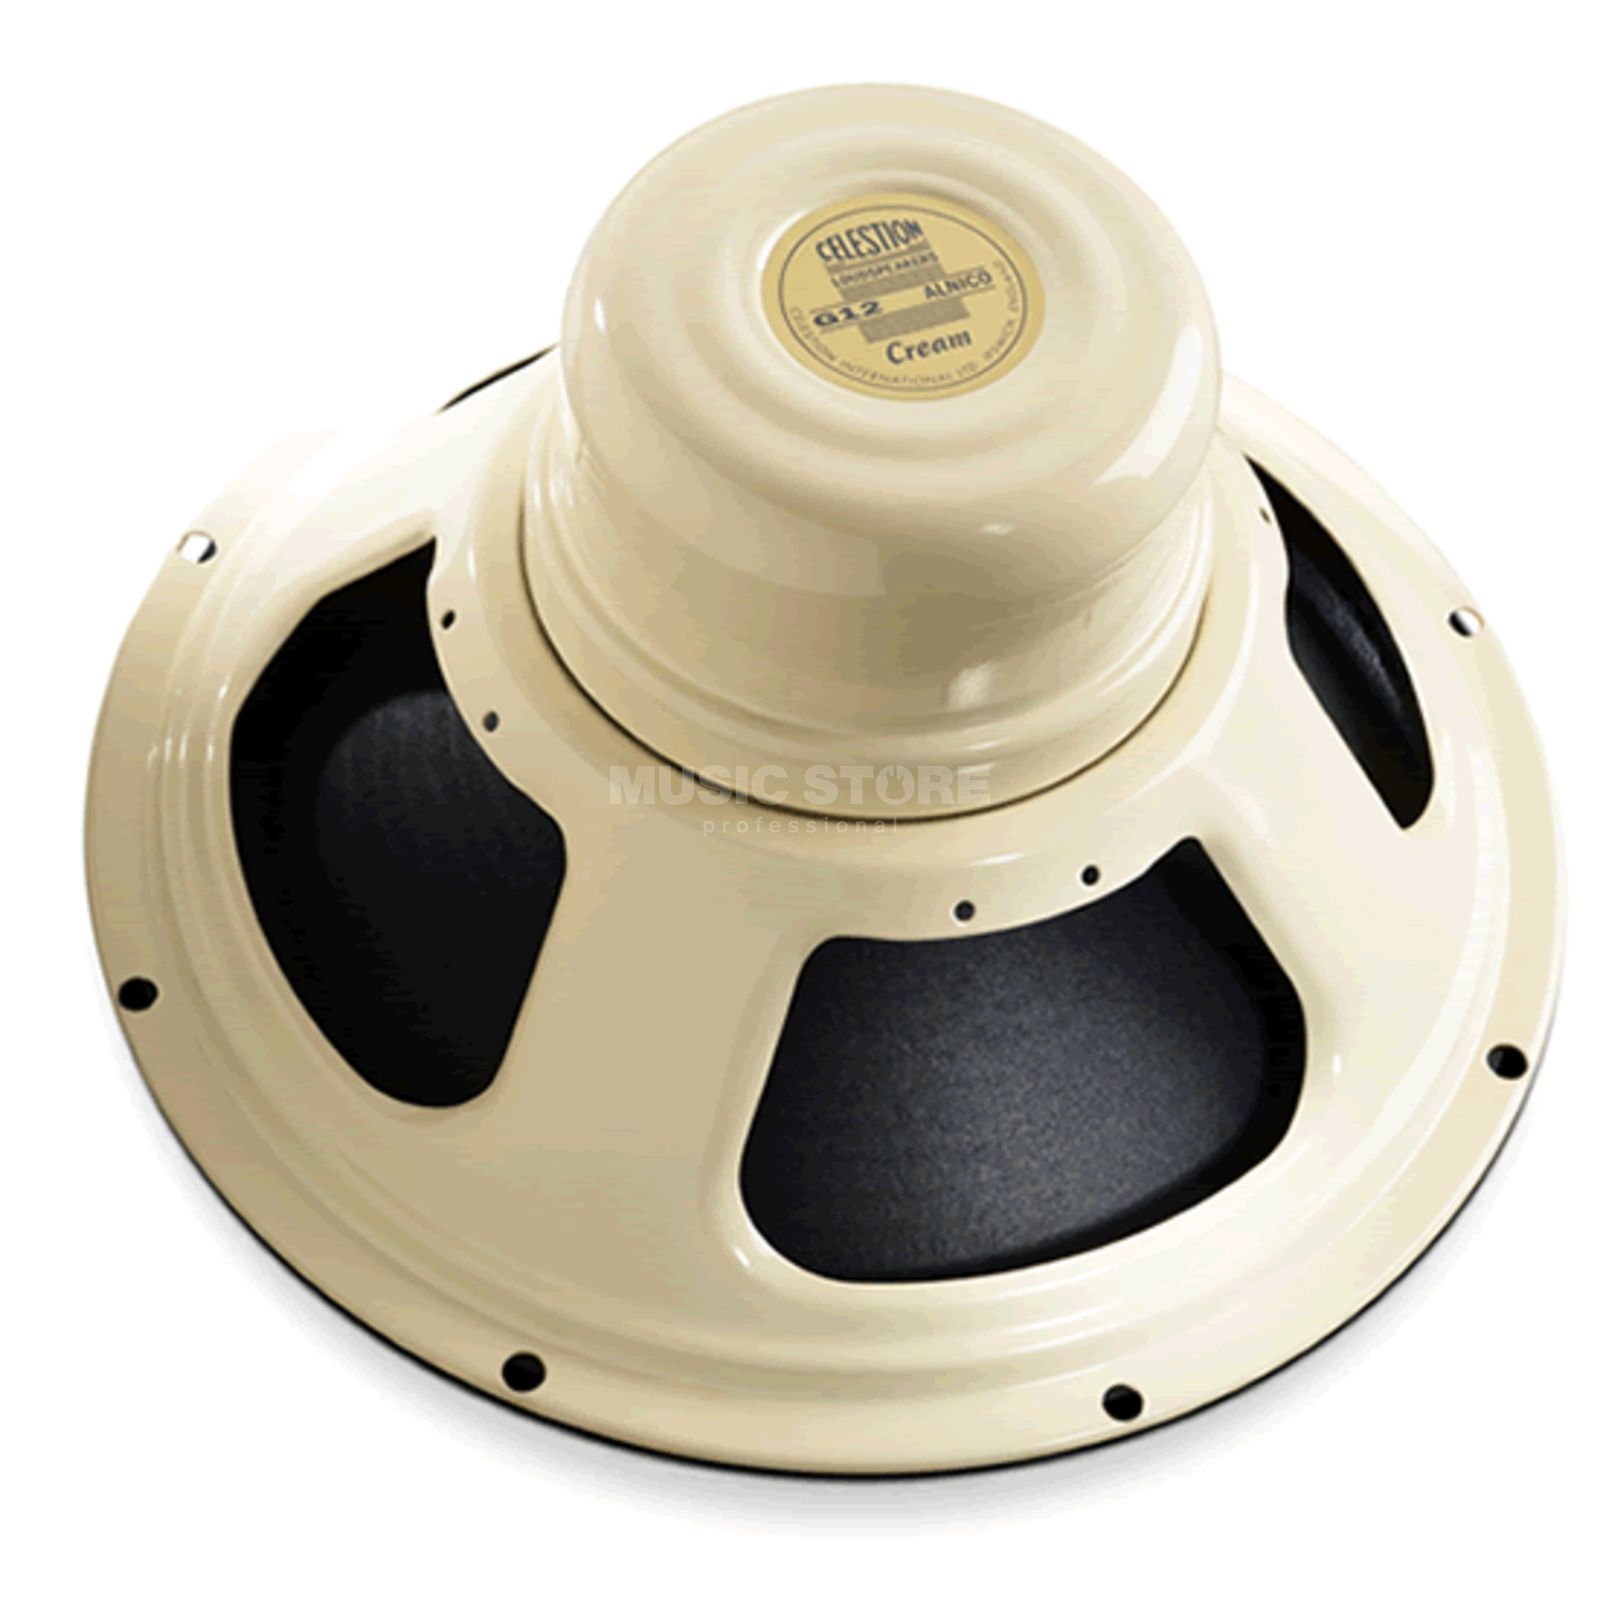 "Celestion Alnico Cream 12"" 8 Ohm Produktbild"